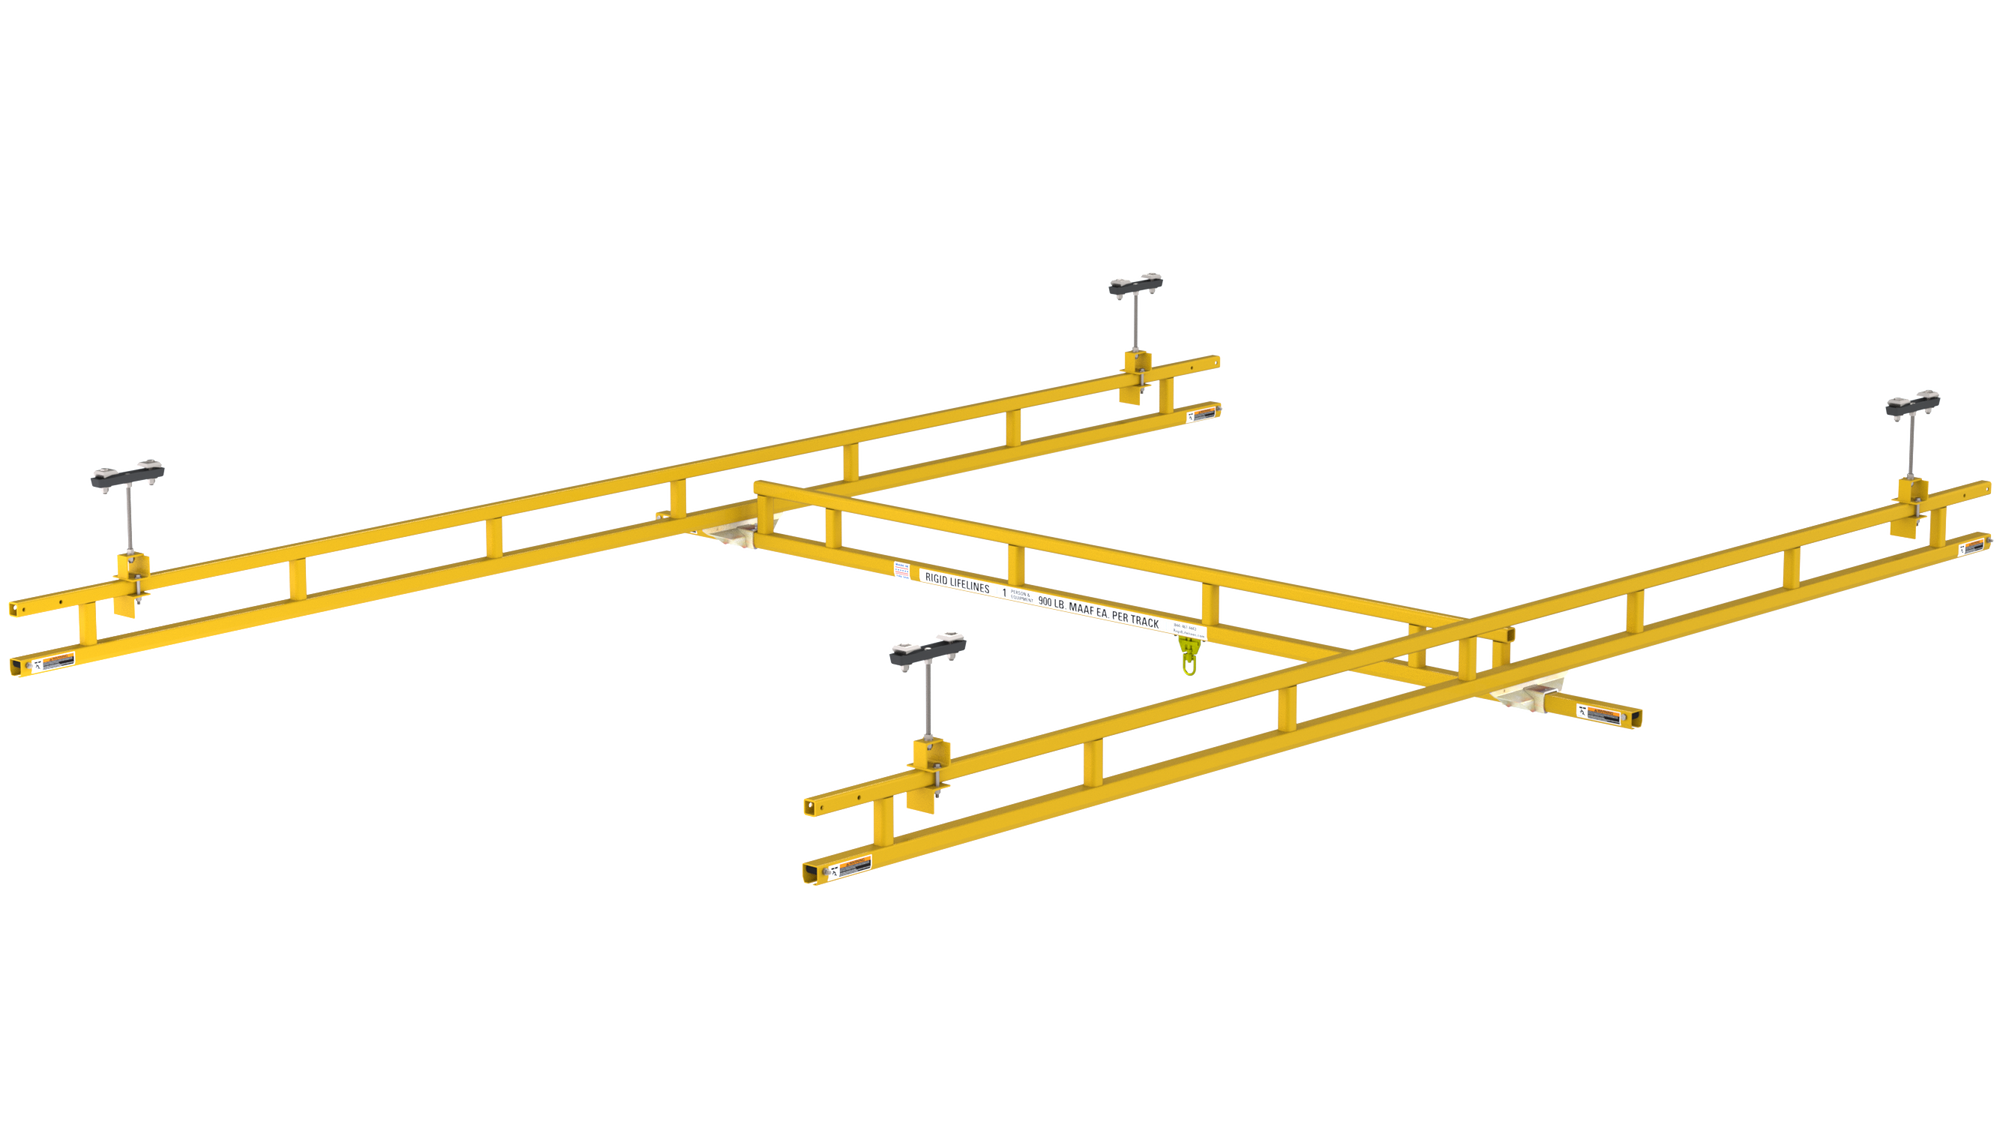 Ceiling Mount Traveling Bridge With 25' Track Support Spacing